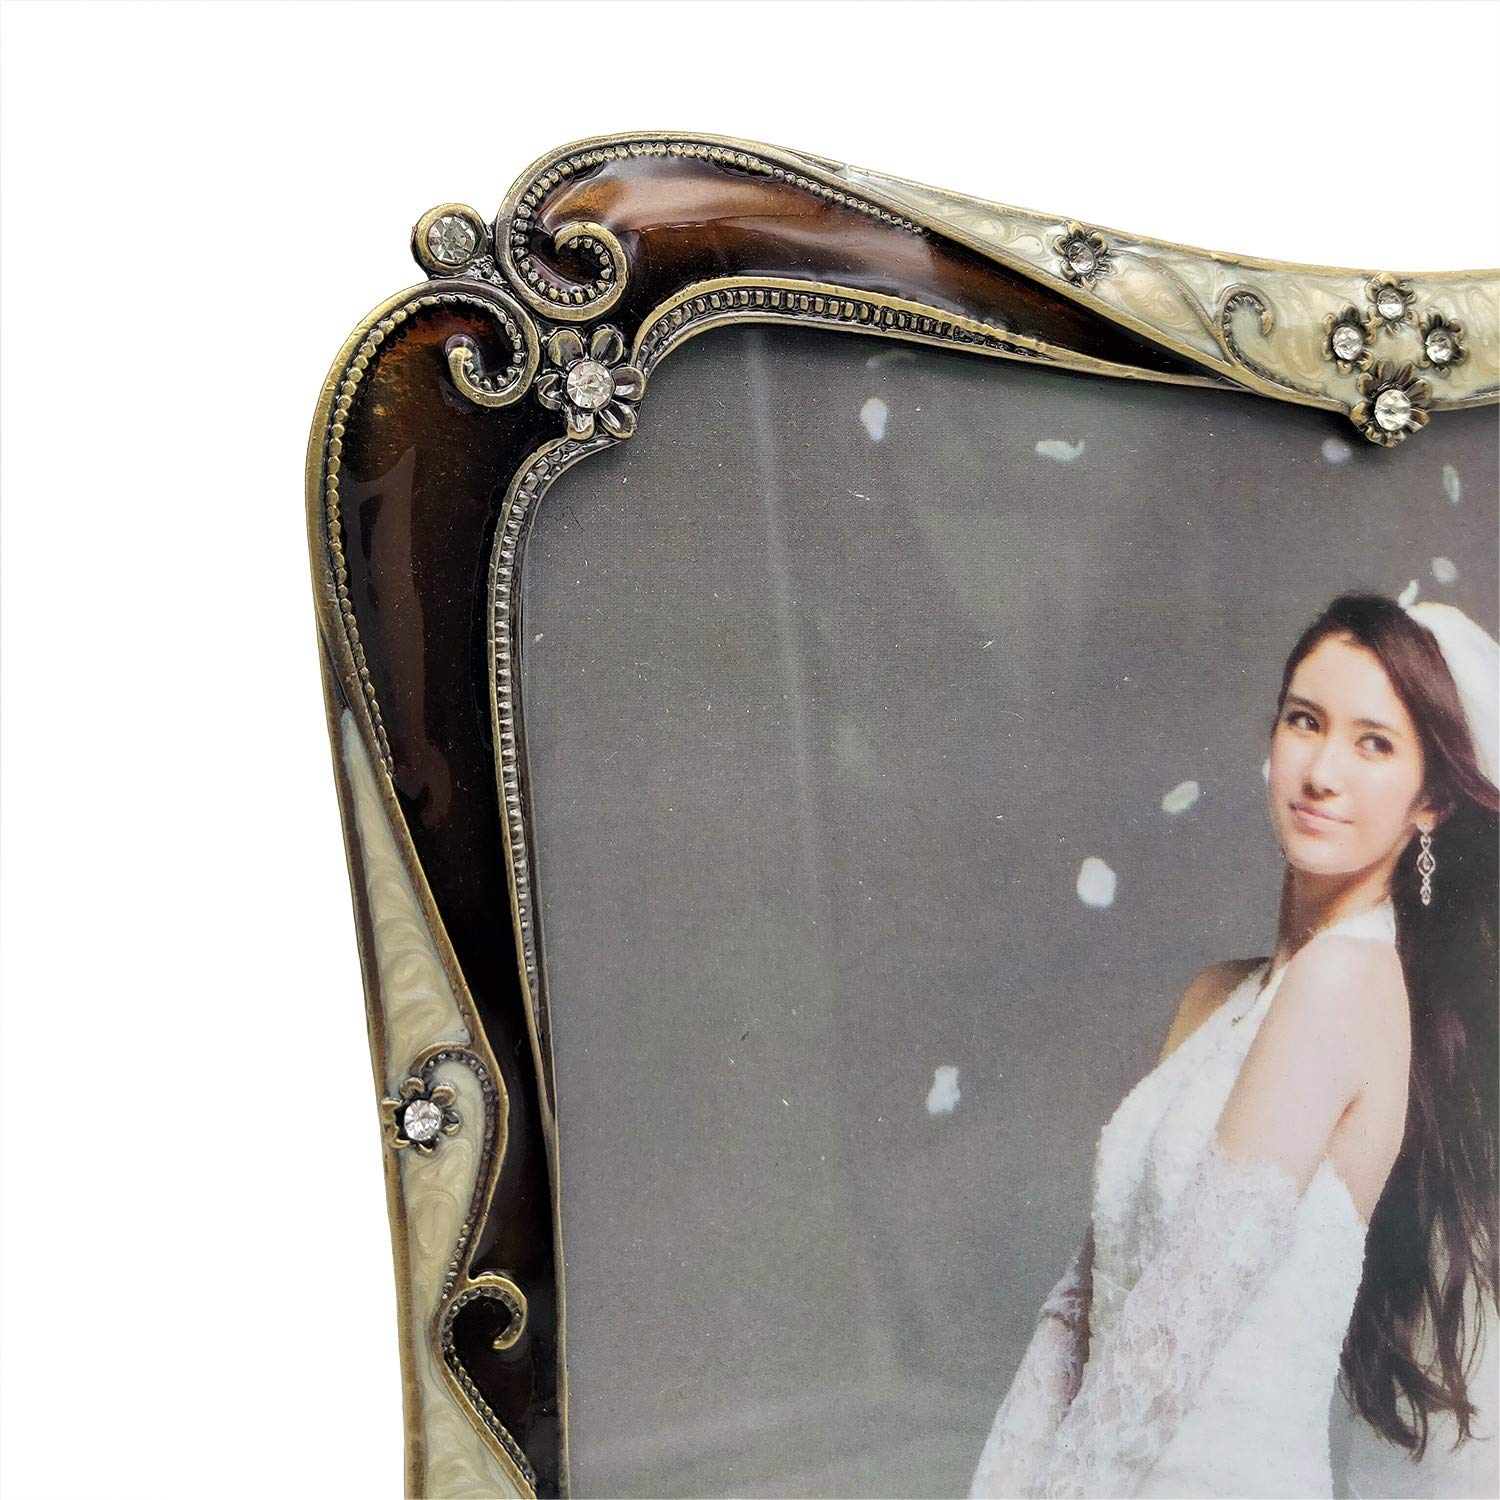 Tabletop Display Made of Metal and HD Glass WorldWide Selection 4x6 Ornate Retro Vintage Pictures Frame//Photo Frames//Wedding Photo Frames for 4 by 6 Inches Photo